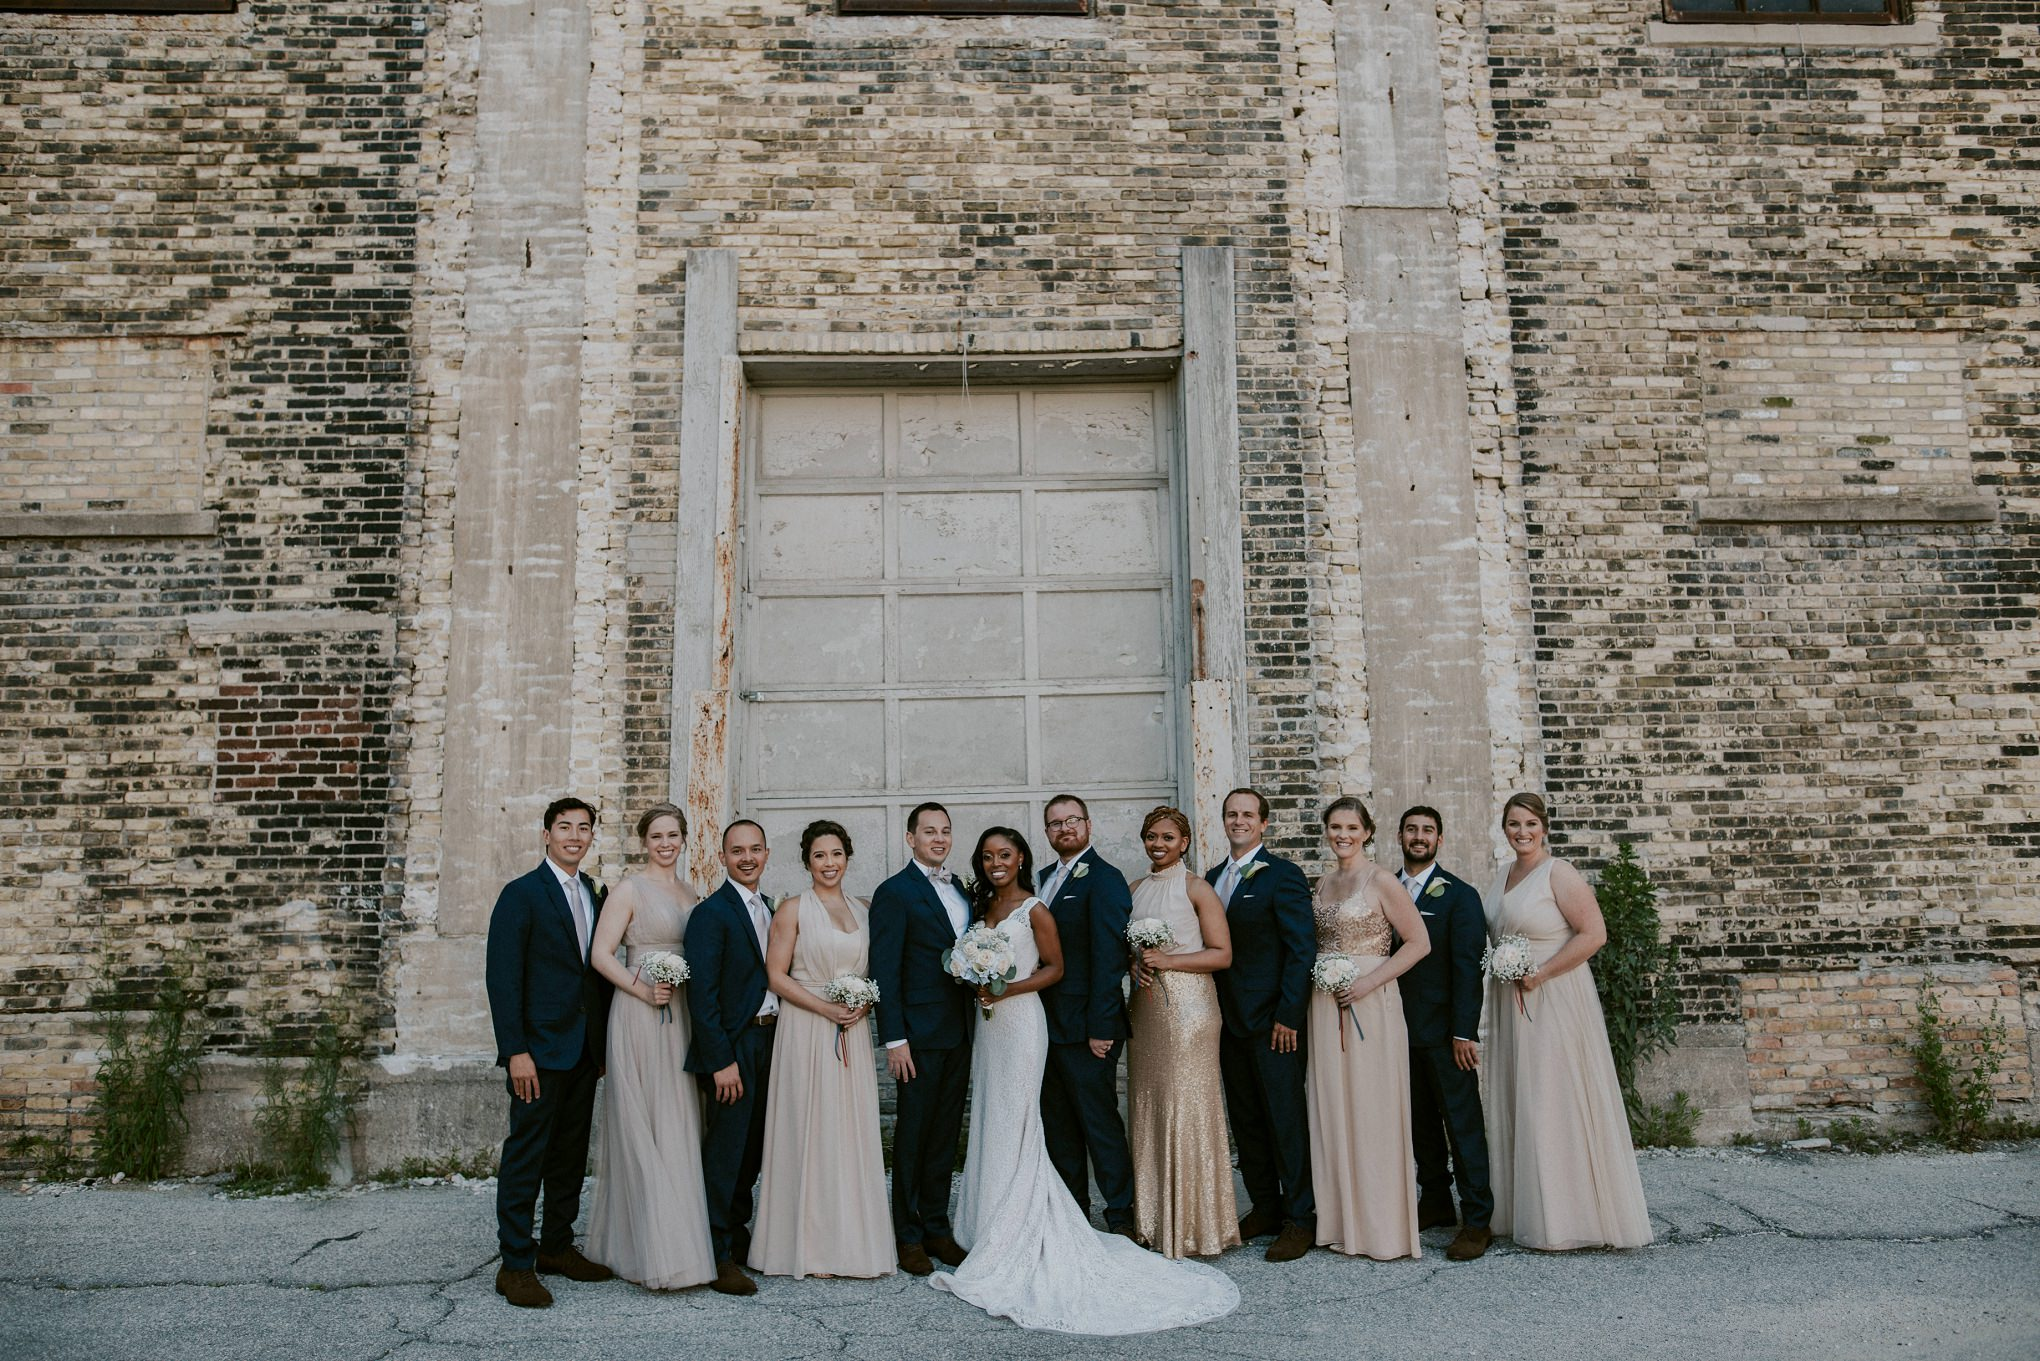 Gold Bridesmaid Dress Milwaukee Wedding Photographer Downtown Married In